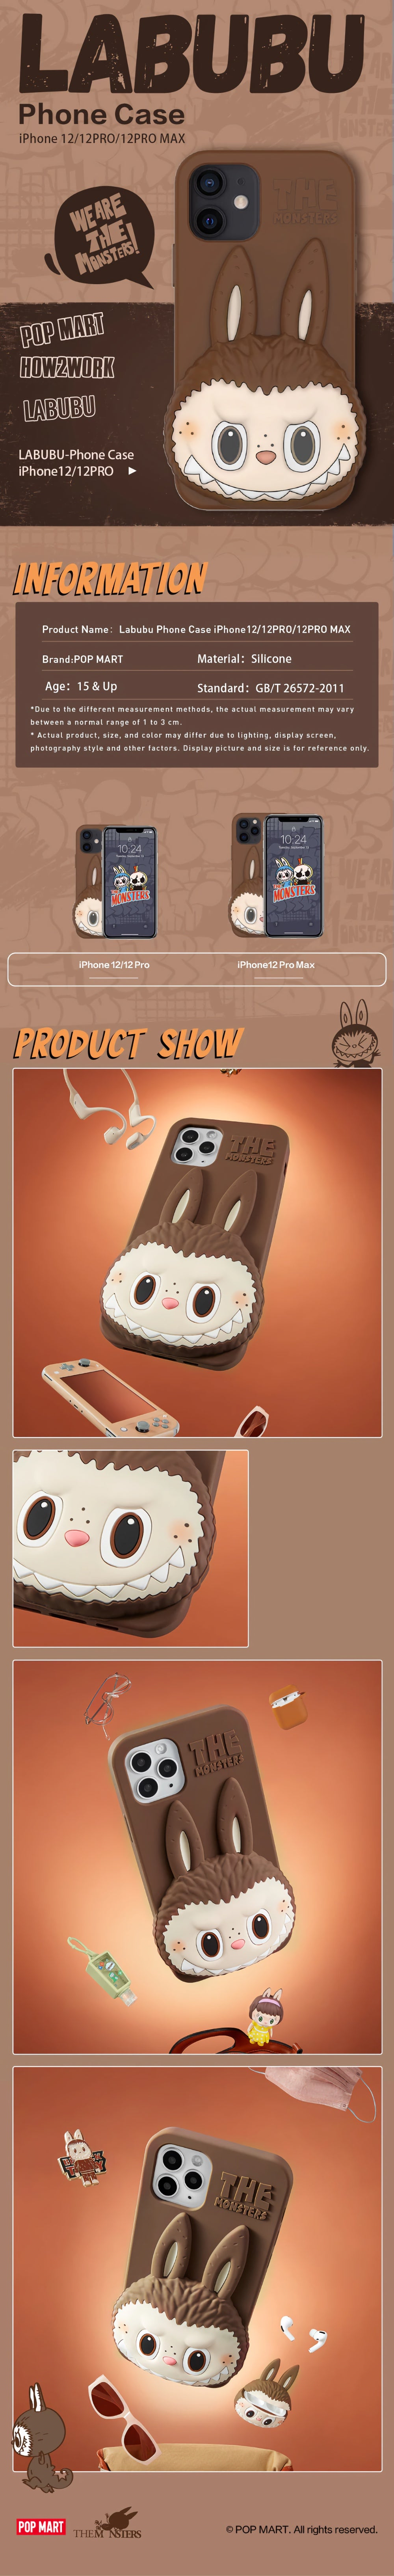 POP MART Labubu the Monsters Protective Case for iPhone